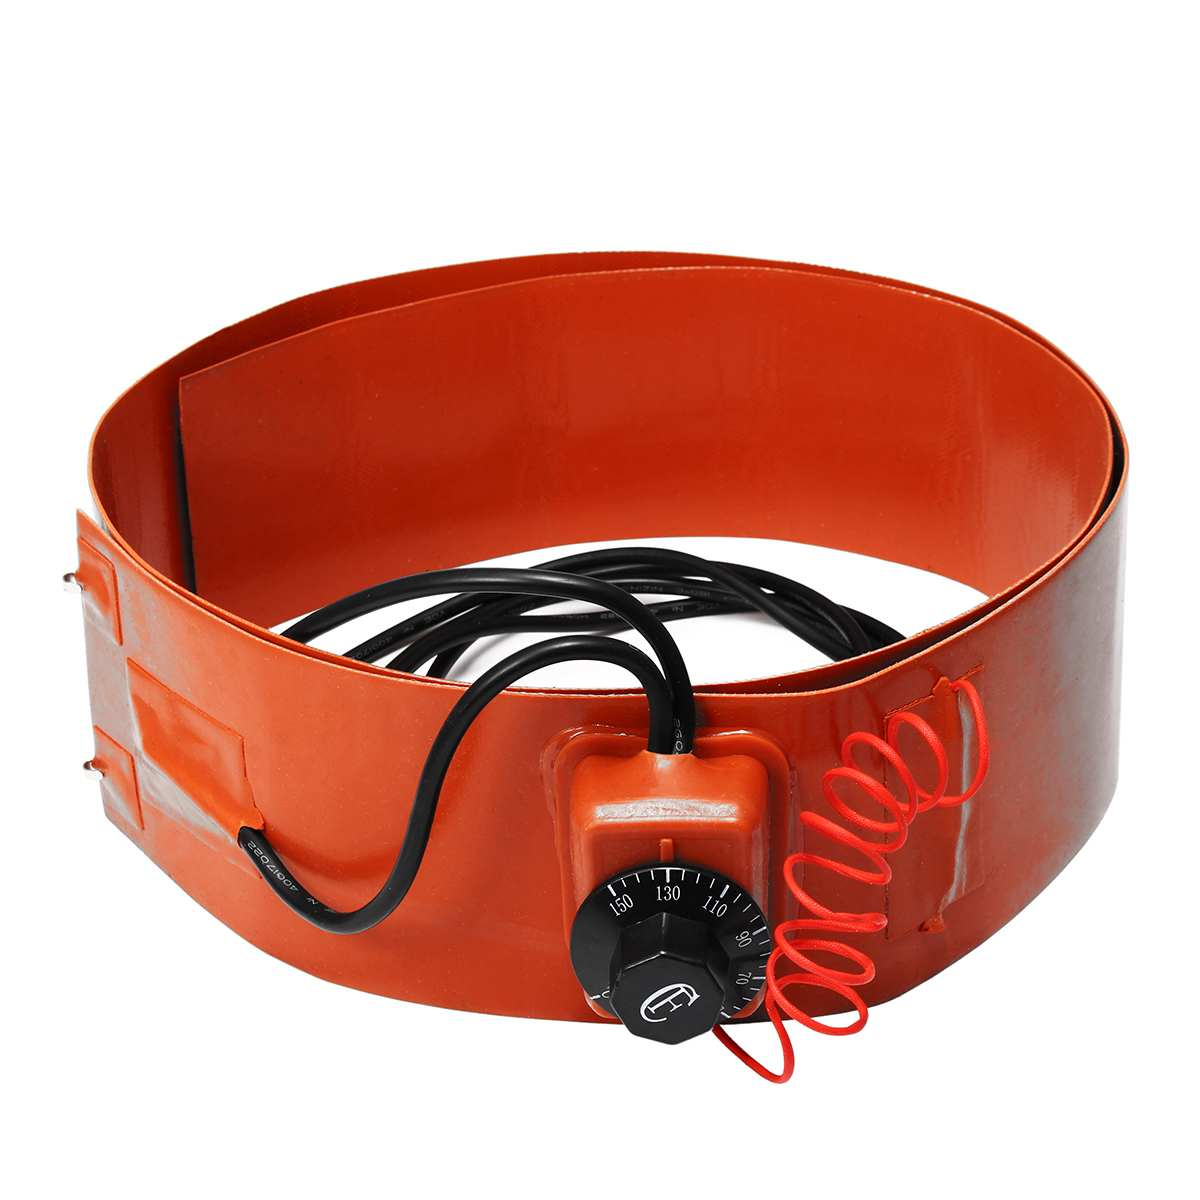 Flexible Silicone Drum Silicon Rubber Heating Belt Energy Biodiesel Equipment Thermostat Control Replacement Accessories 700W